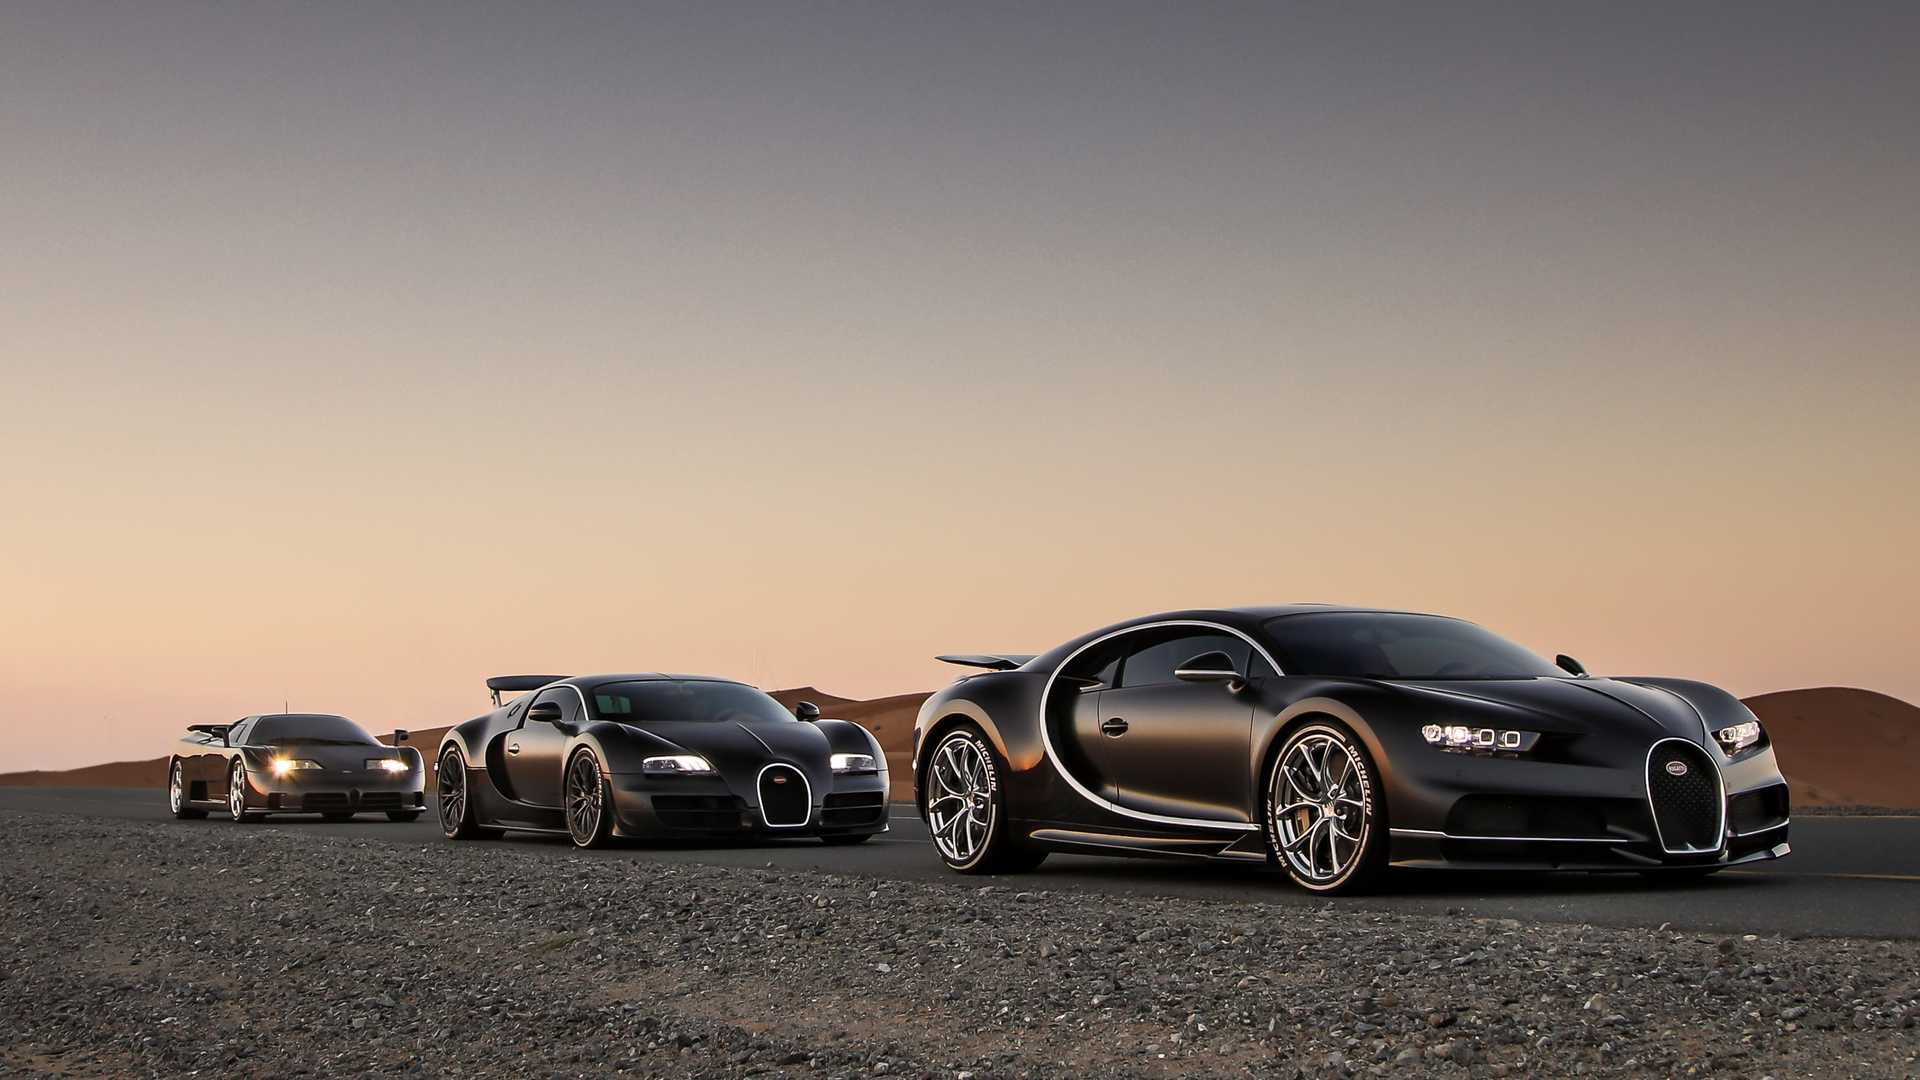 Bugatti Chiron, Veyron, and EB110 In Dubai